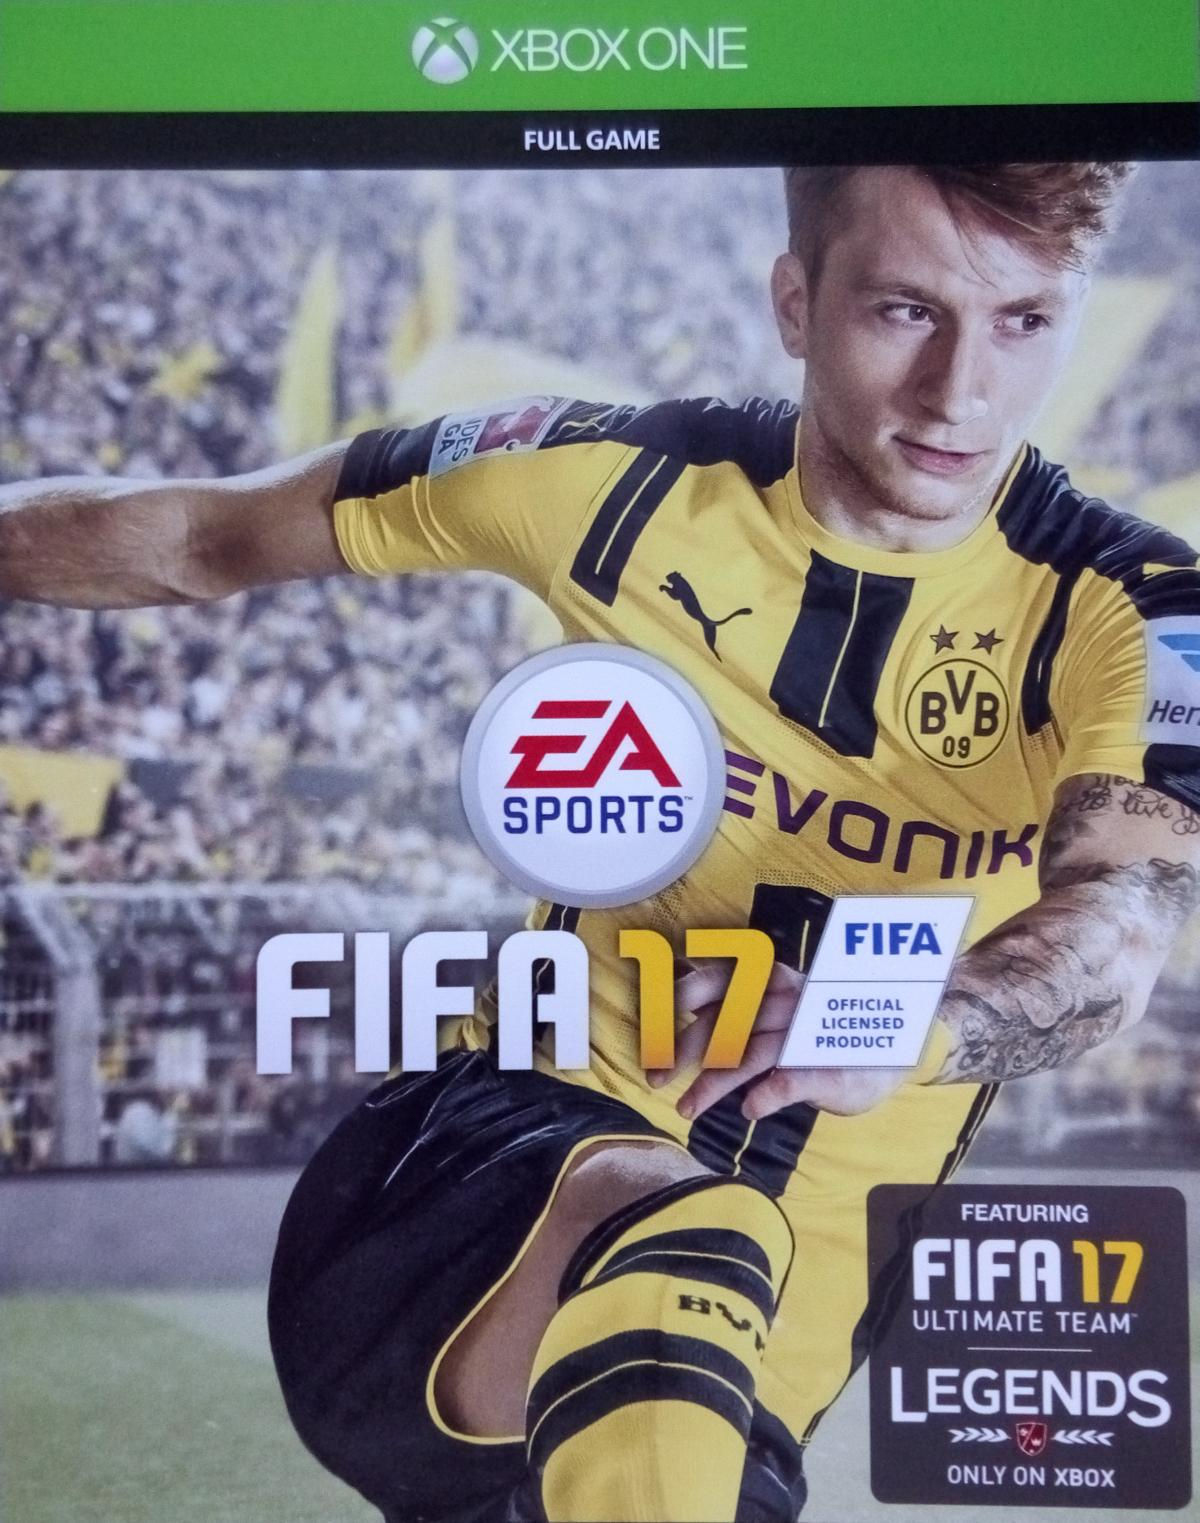 FIFA 17 XBOX ONE SCAN (KEY PHOTO) DOWNLOAD CODE